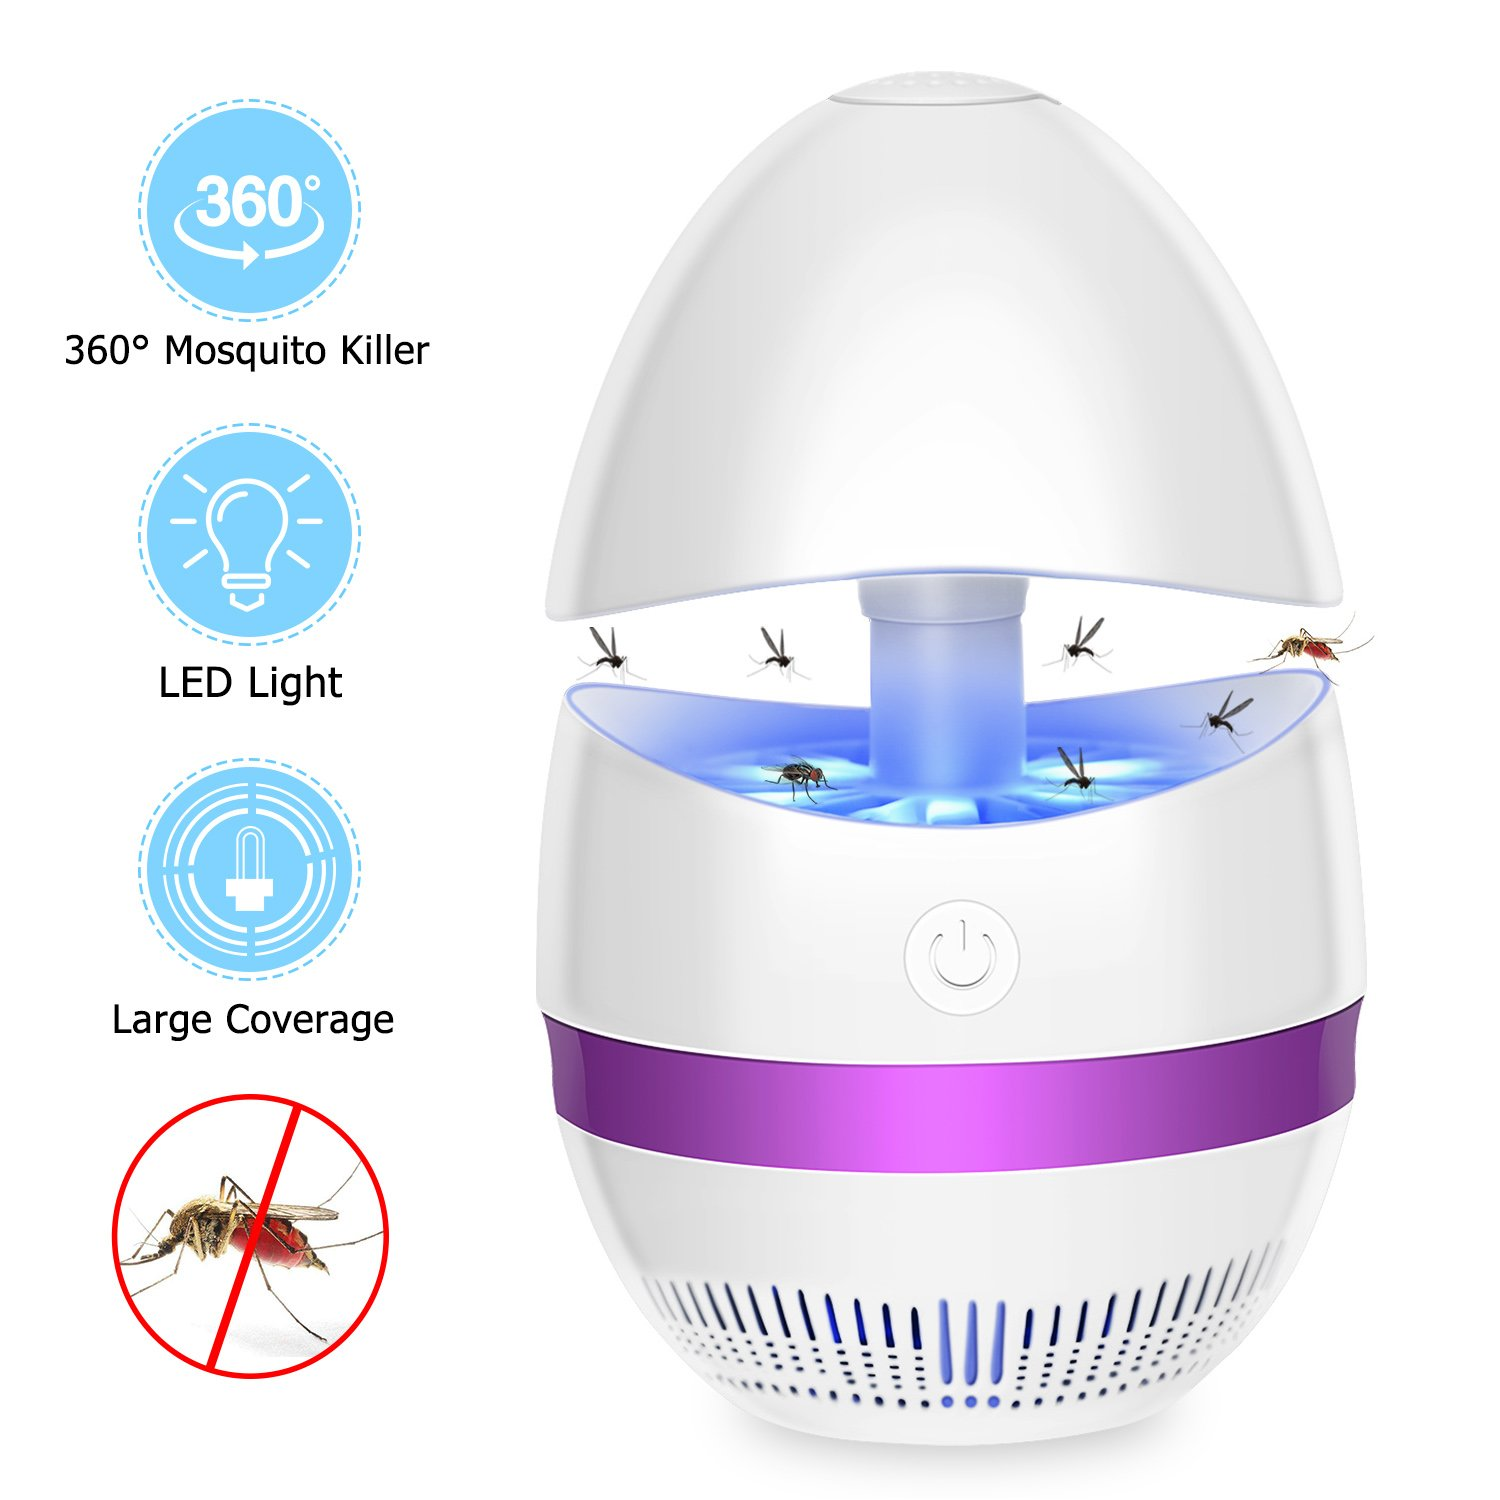 Bug Zapper Indoor Electronic Insect Killer Mosquito Killer Lamp Safe USB Powered Mosquito Zapper with Built in Fan Insect Trap for Indoor Bedroom Kitchen Outdoor Garden Patio Yard Office (Purple)